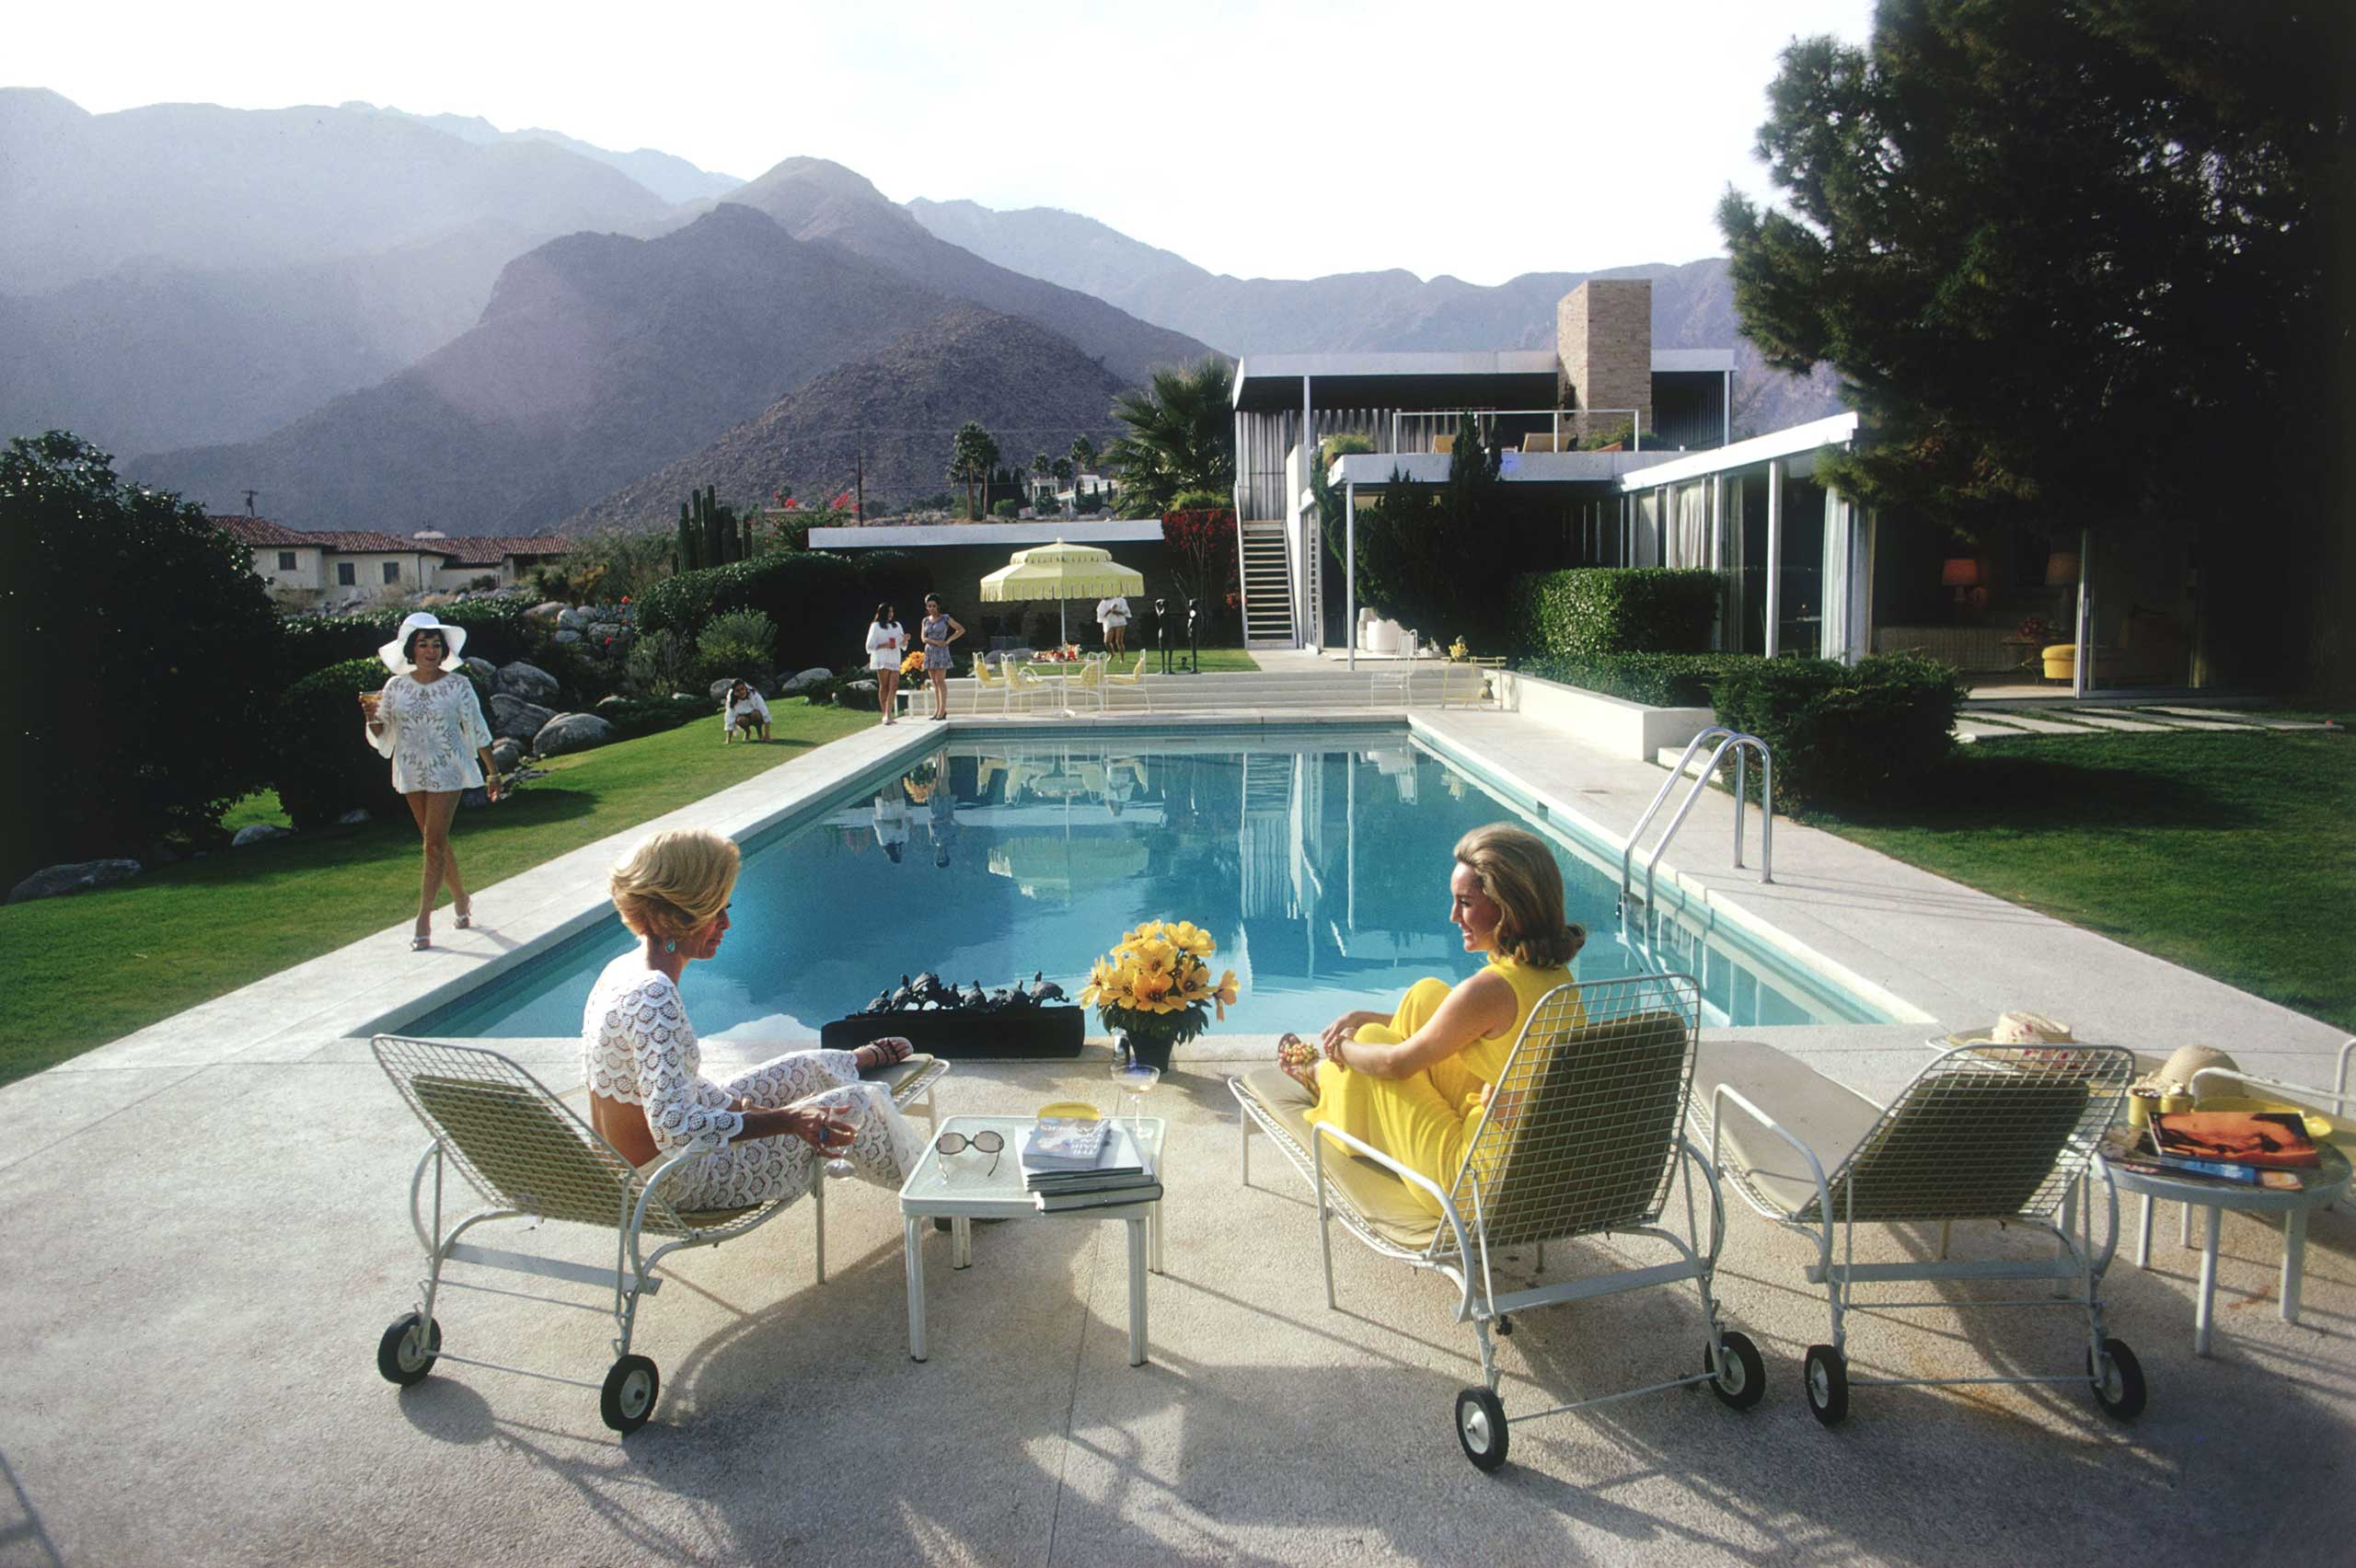 Slim Aarons, Stayley Wise Gallery, N.Y.: Oct. 14 - Nov. 26                               (Caption: Poolside Gossip, 1970: Lita Baron, Nelda Linsk, and Helen Dzo Dzo at a desert house in Palm Springs designed by Richard Neutra for Edgar Kaufman)